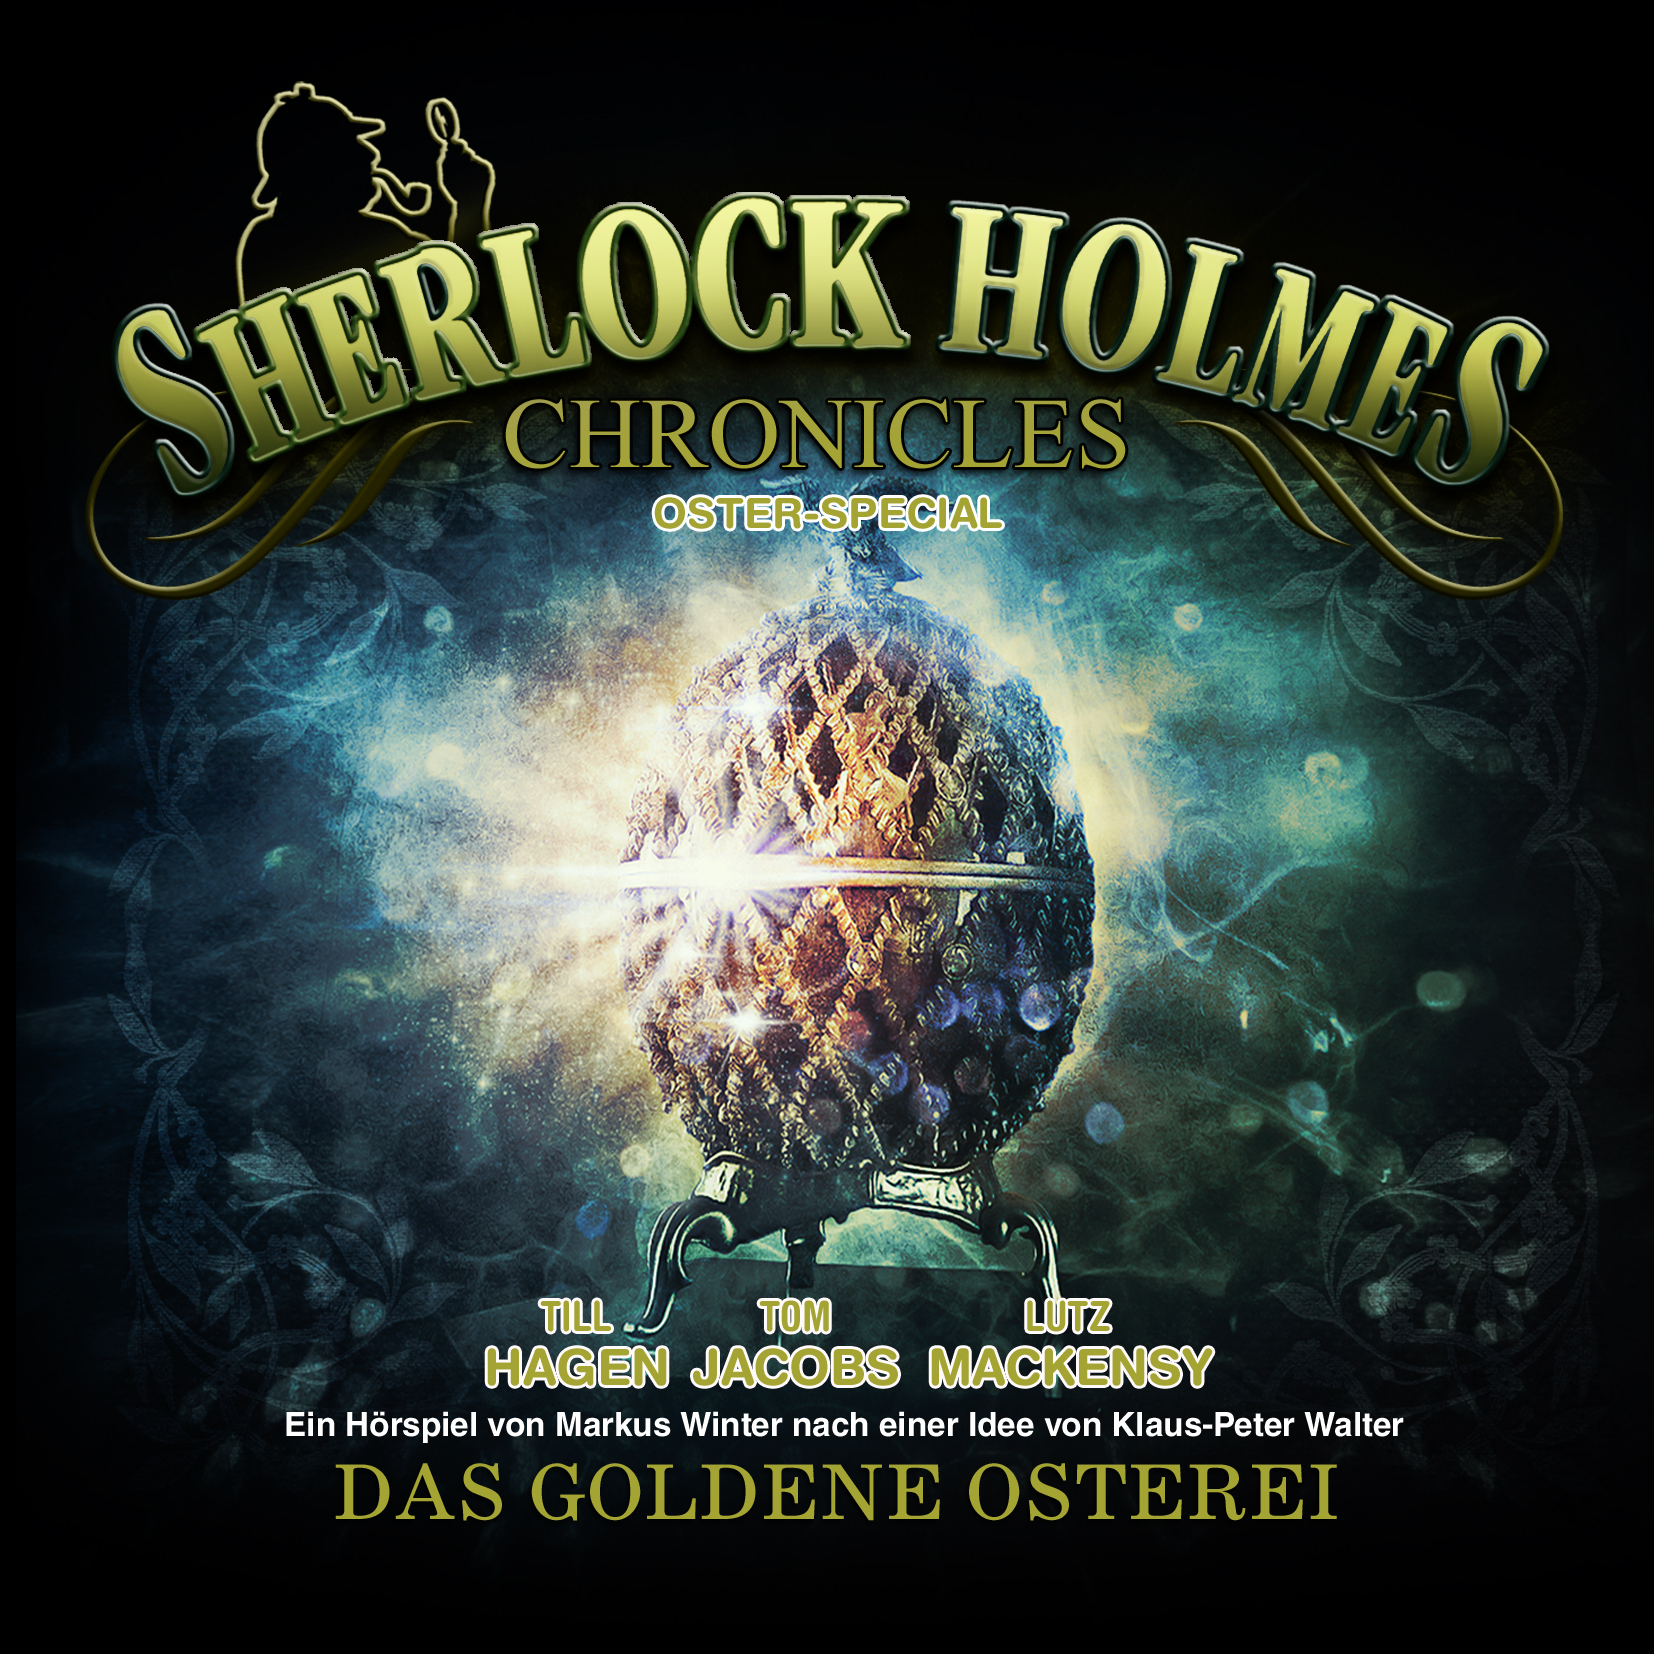 Das Osterspecial von den Sherlock Holmes Chronicles in der WinterZeit in Lüttringhausen. | Cover: WinterZeit Audiobooks